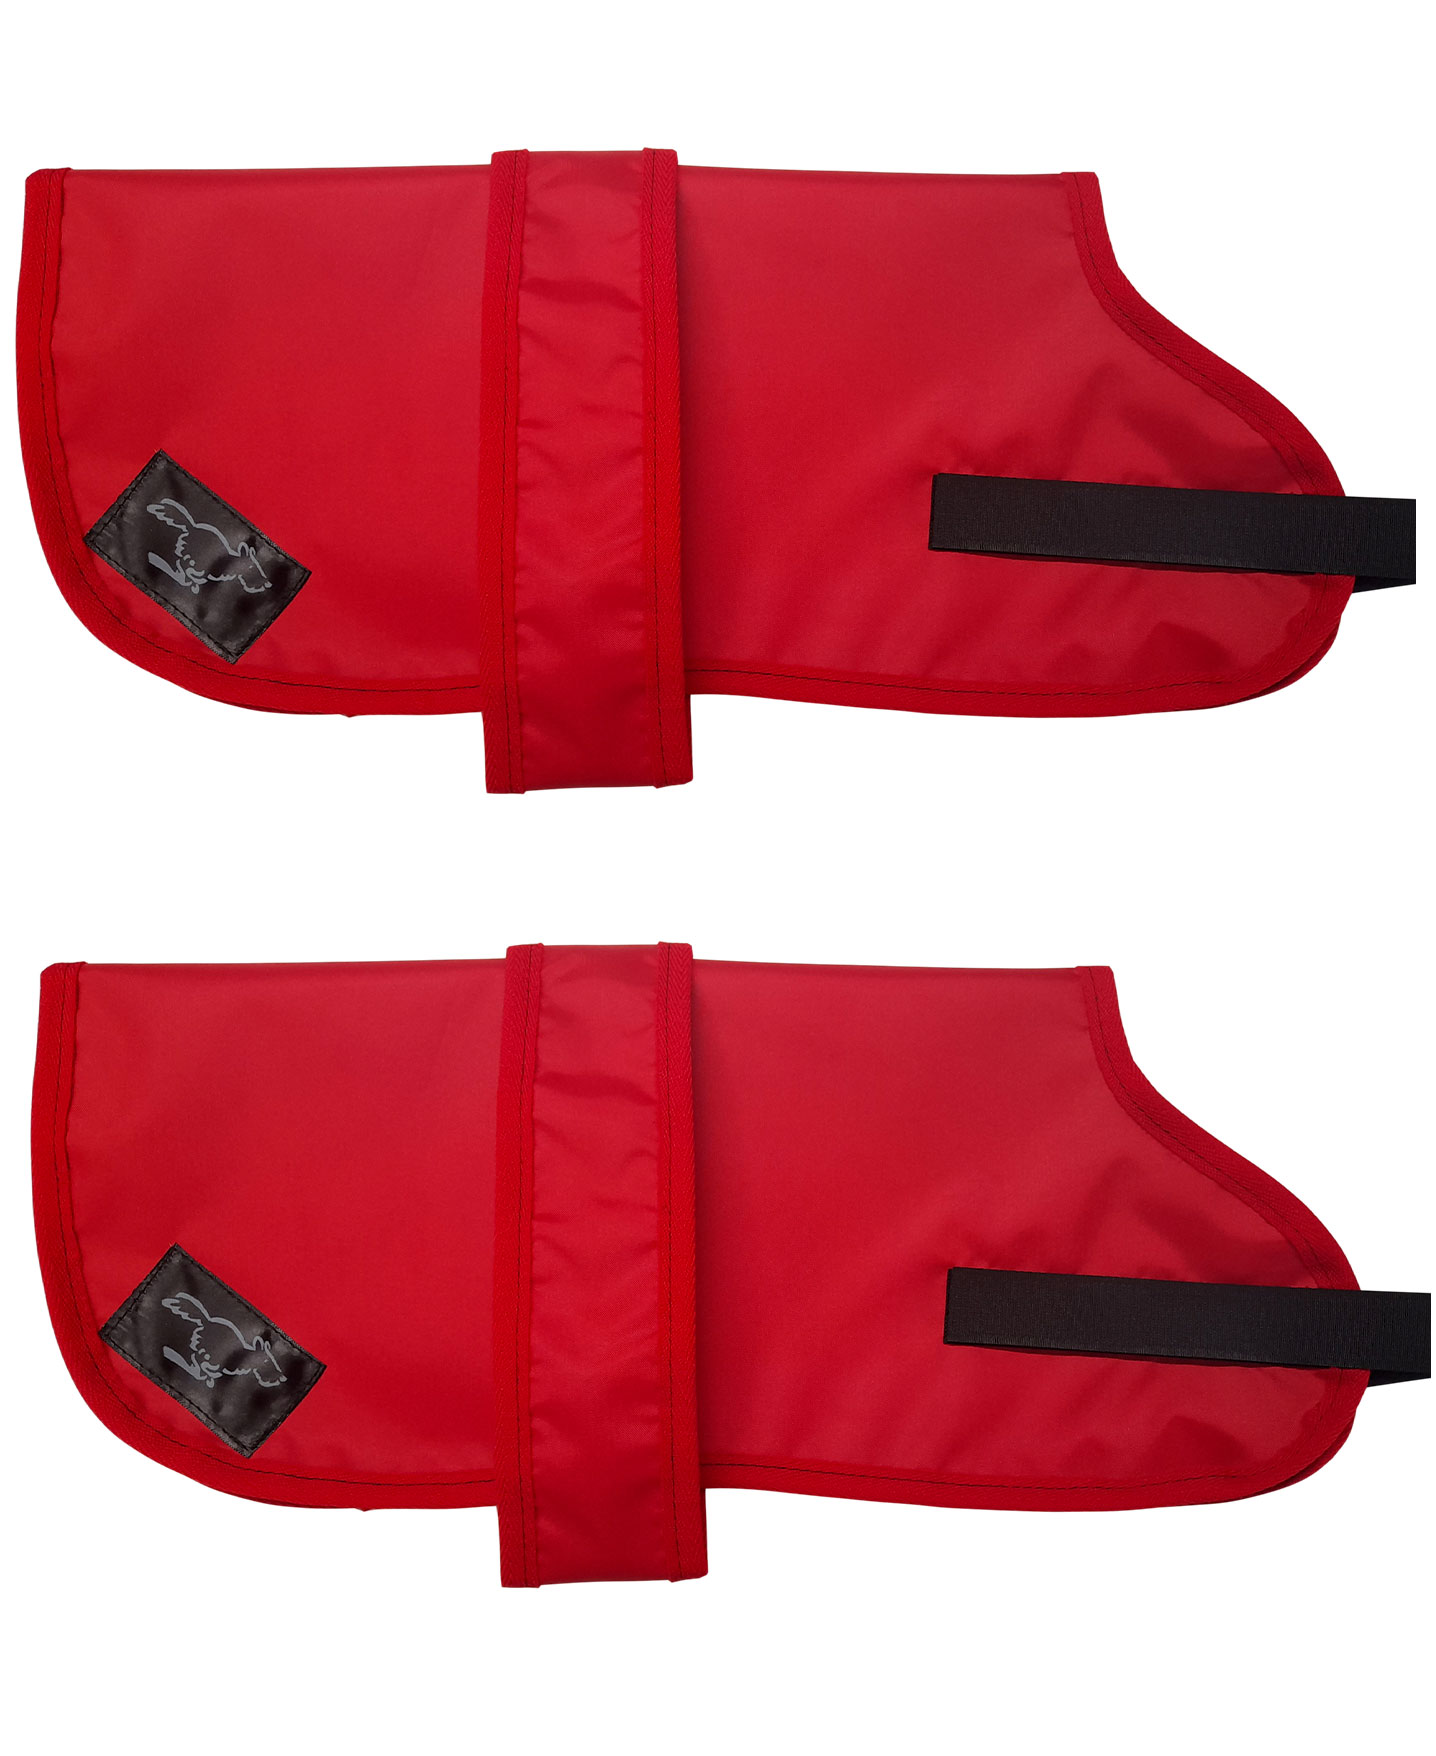 Personalised Waterproof Dog Coats - Lightweight Lining - Red